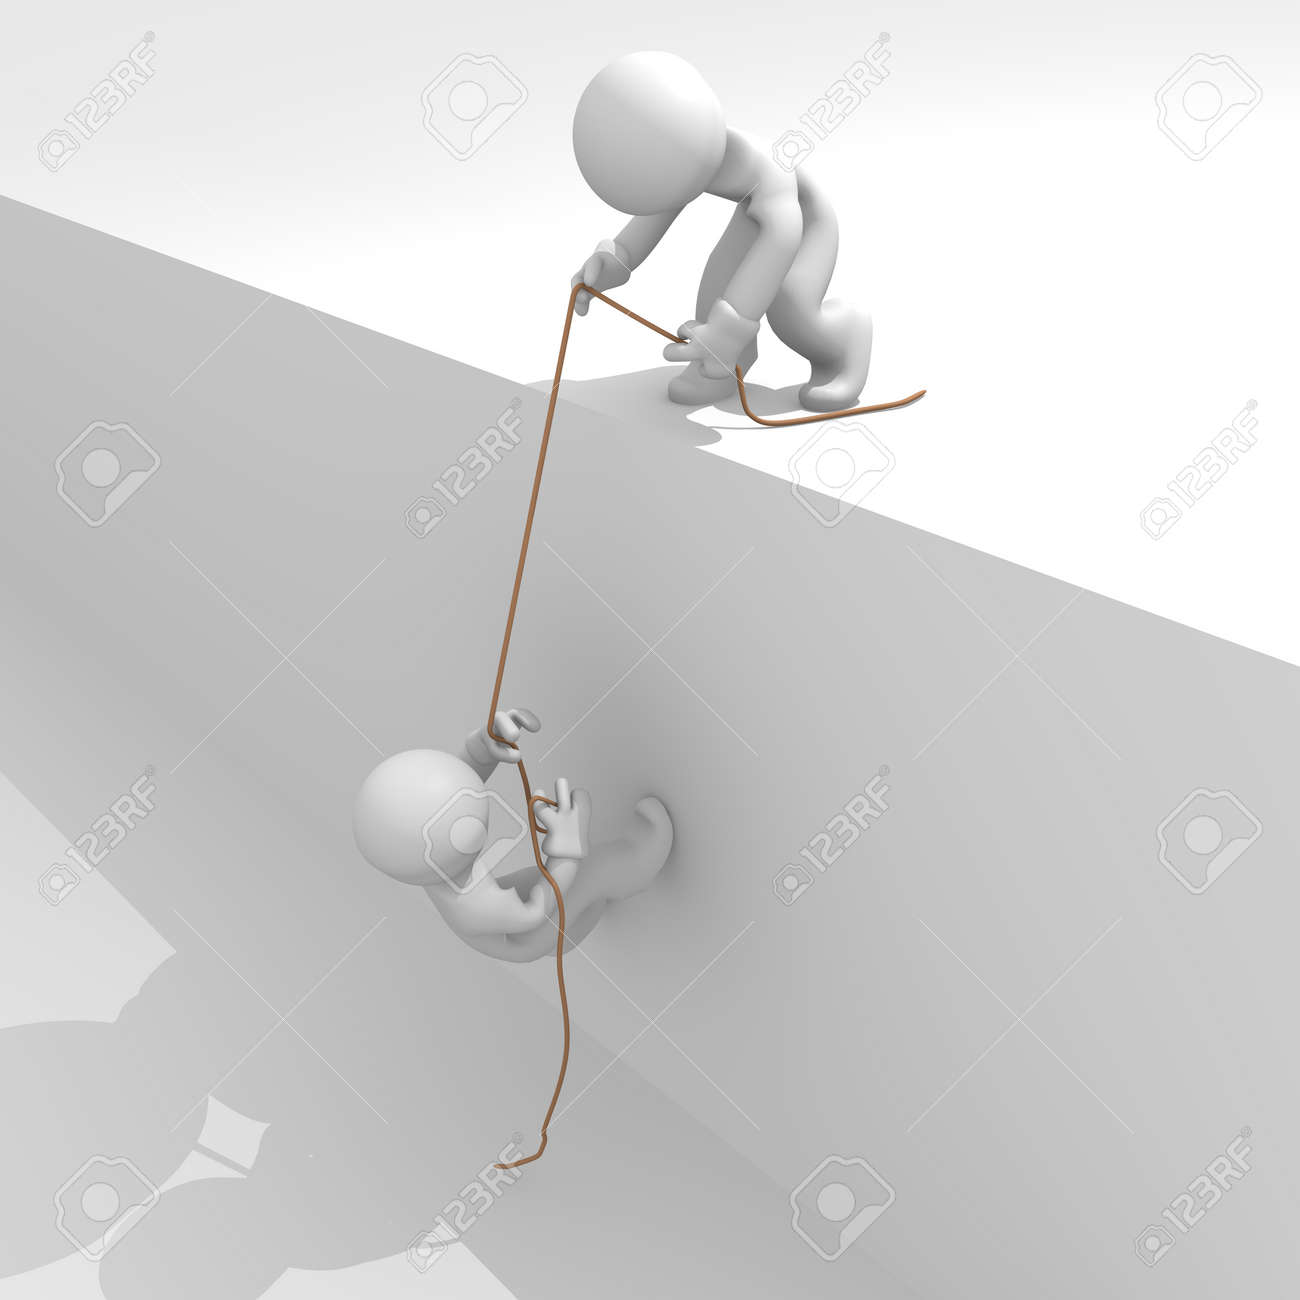 Helping hand, teamwork concept, 3d image Stock Photo - 12927866